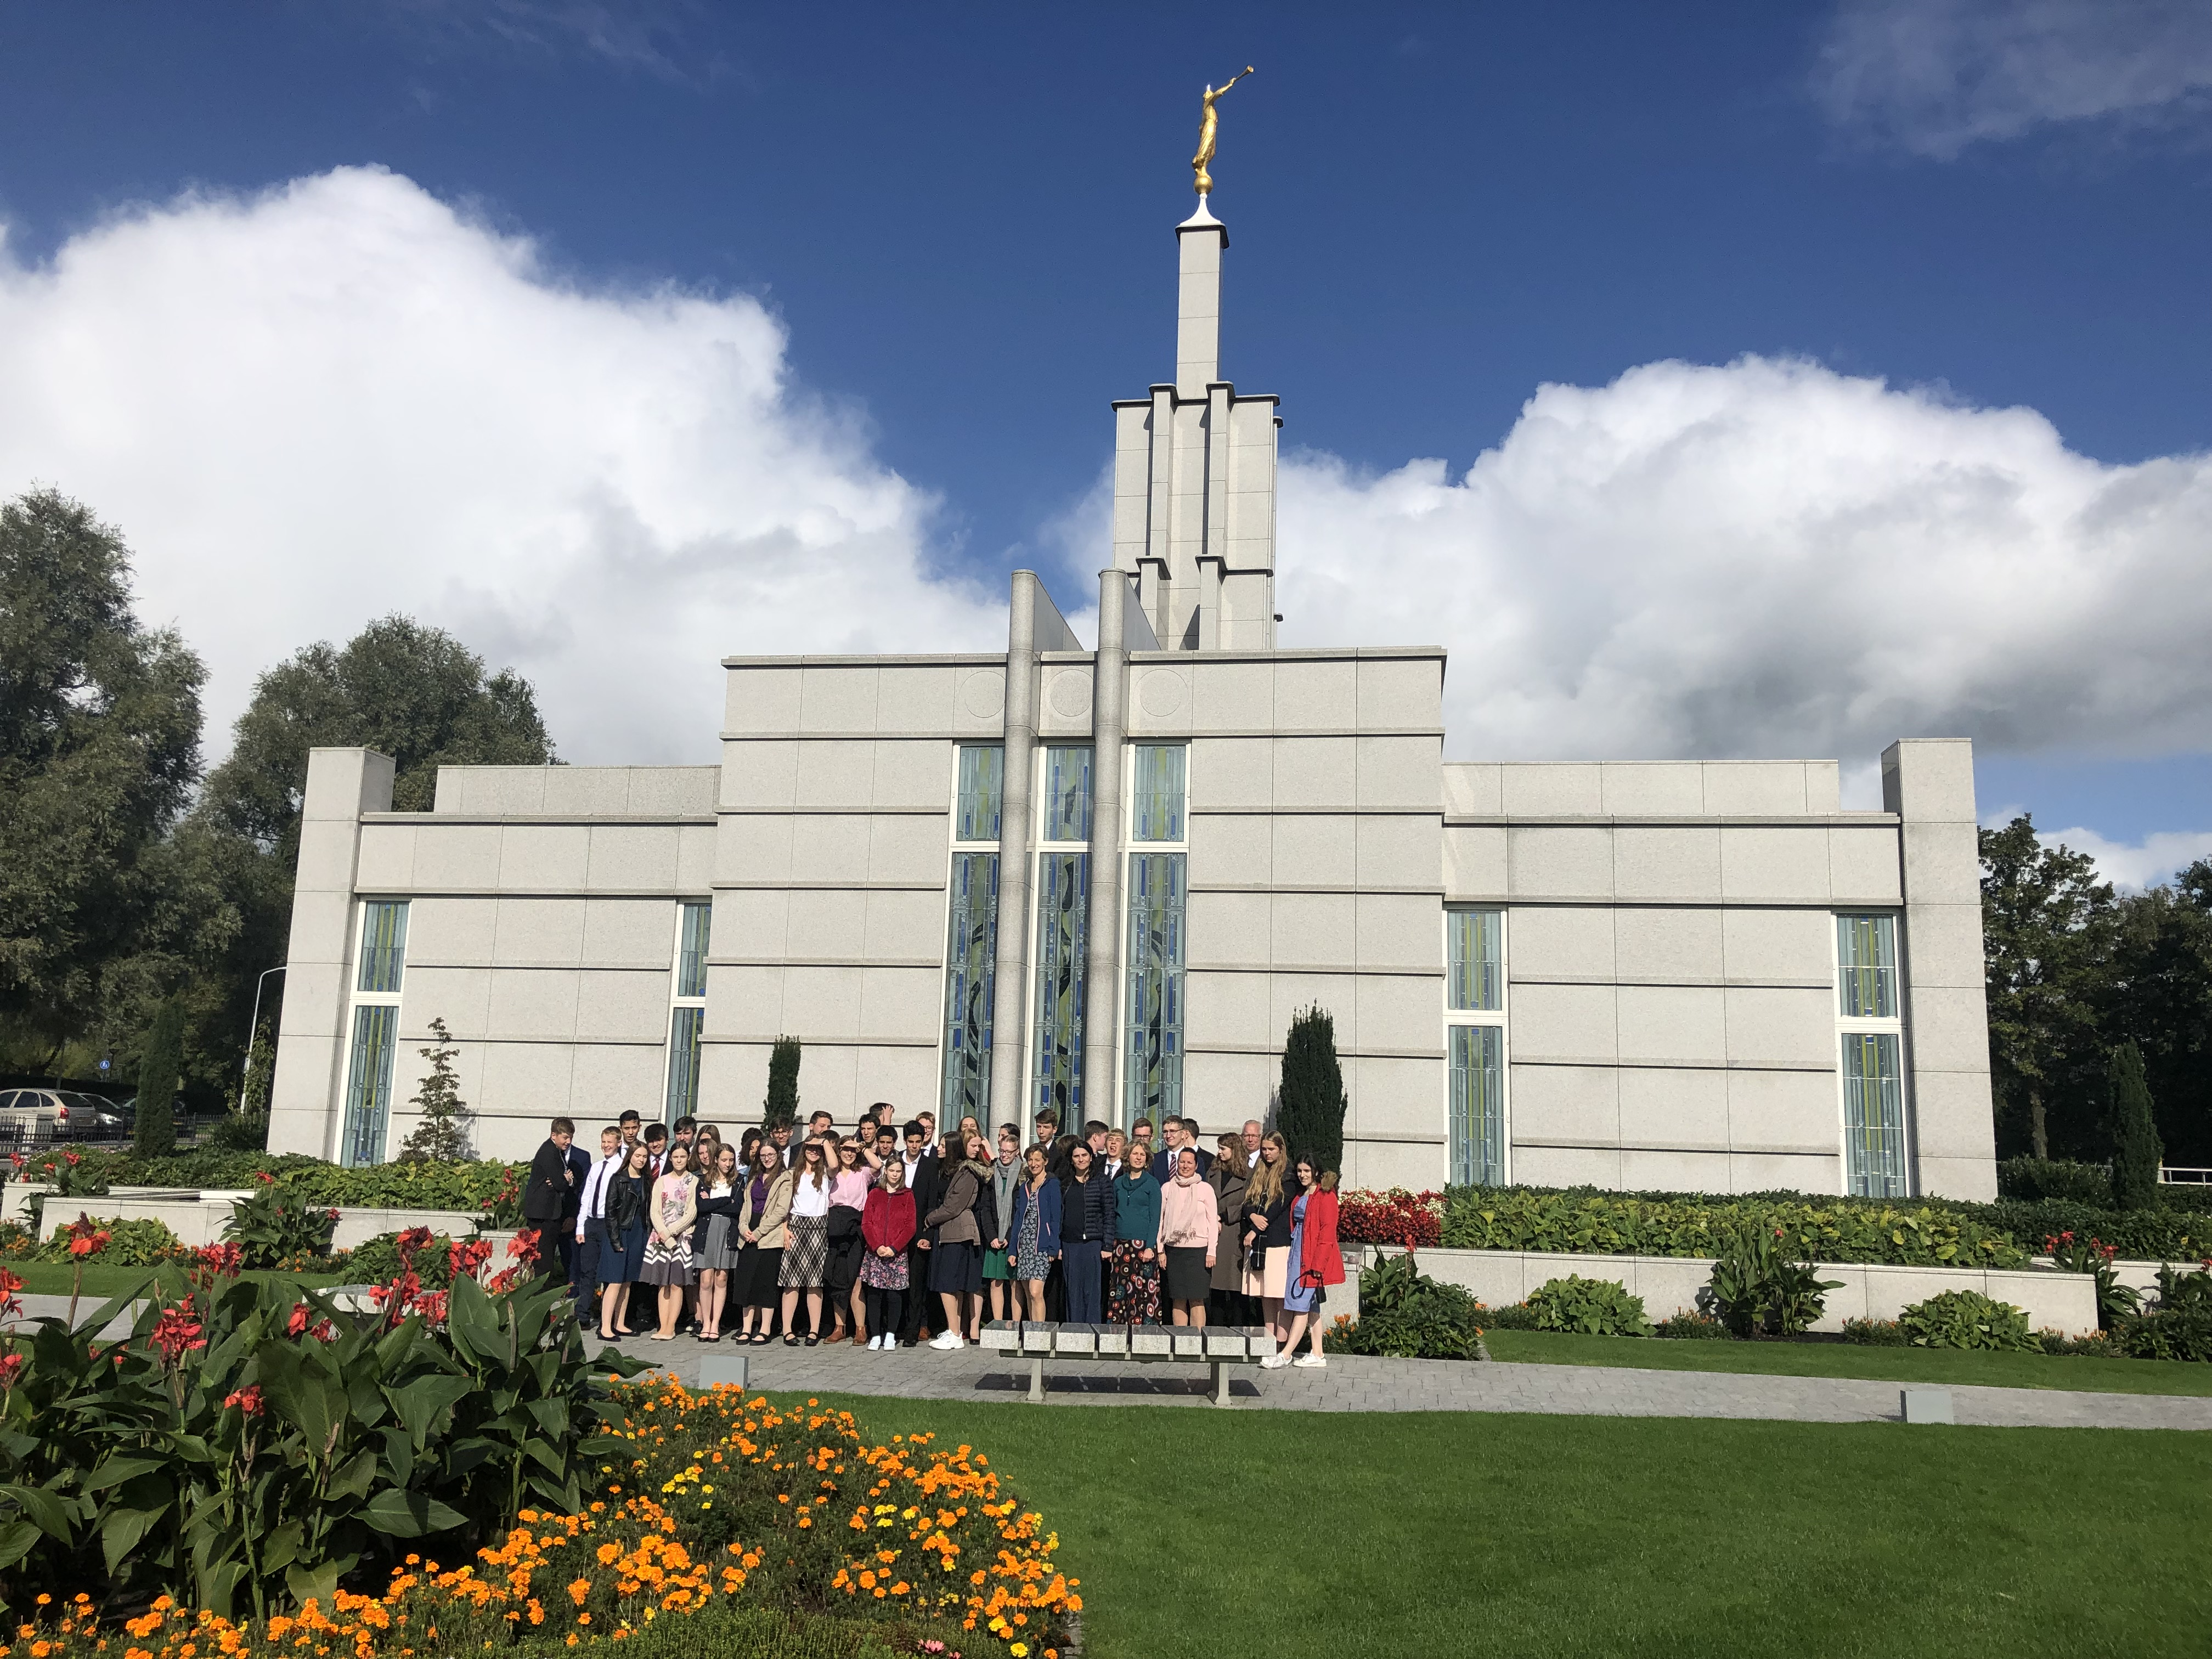 Youth of the Friedrichsdorf Germany Stake gather outside The Hague Netherlands Temple during the stake's October 2019 temple trip.